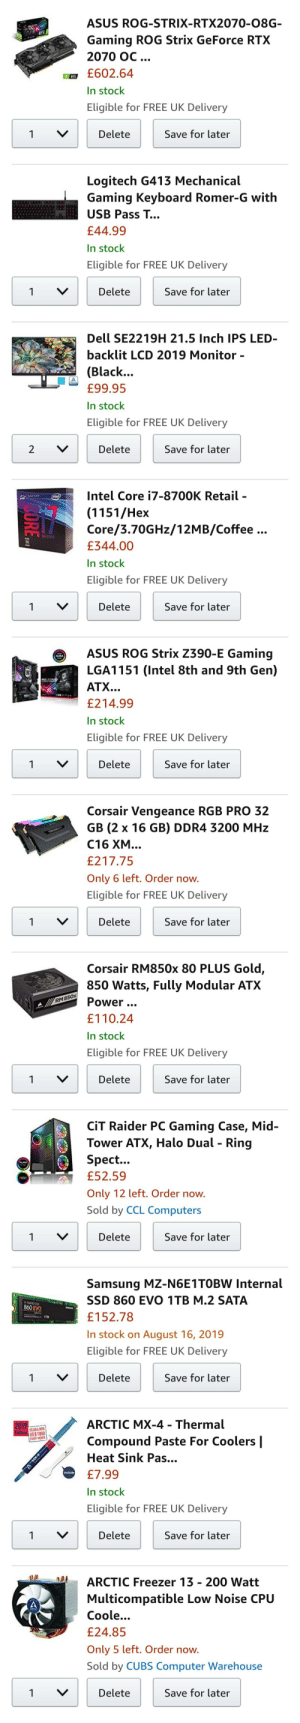 Approaching my first build, opinions? Not an expert.: ASUS ROG-STRIX-RTX2070-08G-  RTX  Gaming ROG Strix GeForce RTX  2070 OC.  £602.64  RTX  In stock  Eligible for FREE UK Delivery  Delete  Save for later  1  Logitech G413 Mechanical  Gaming Keyboard Romer-G with  USB Pass T...  £44.99  In stock  Eligible for FREE UK Delivery  Save for later  V  Delete  1  Dell SE2219H 21.5 Inch IPS LED-  backlit LCD 2019 Monitor -  (Black...  £99.95  In stock  Eligible for FREE UK Delivery  V  Save for later  Delete  2  Intel Core i7-8700K Retail -  intel  (1151/Hex  Core/3.70GHZ/12MB/Coffee ...  UNLOCKED  £344.00  In stock  Eligible for FREE UK Delivery  Save for later  Delete  1  ASUS ROG Strix Z390-E Gaming  AURA  LGA1151 (Intel 8th and 9th Gen)  ATX..  £214.99  In stock  Eligible for FREE UK Delivery  Delete  Save for later  1  Corsair Vengeance RGB PRO 32  GB (2 x 16 GB) DDR4 3200 MHz  C16 XM...  £217.75  Only 6 left. Order now.  Eligible for FREE UK Delivery  Save for later  Delete  1  Corsair RM850x 80 PLUS Gold,  850 Watts, Fully Modular ATX  Power...  RM 850x  £110.24  In stock  Eligible for FREE UK Delivery  Save for later  Delete  1  CiT Raider PC Gaming Case, Mid-  Tower ATX, Halo Dual - Ring  Spect...  £52.59  RIGE  Only 12 left. Order now.  Sold by CCL Computers  Save for later  1  Delete  Samsung MZ-N6E1TOBW Internal  SSD 860 EVO 1TB M.2 SATA  V-NAND SSD  860 EVO  £152.78  In stock on  August 16, 2019  Eligible for FREE UK Delivery  Save for later  Delete  1  V  ARCTIC MX-4 - Thermal  2019  SCAN&WIN  Edition s$1000  Compound Paste For Coolers |  EVERY MONTH  Heat Sink Pas...  MAm  £7.99  include  In stock  Eligible for FREE UK Delivery  Save for later  Delete  1  ARCTIC Freezer 13 - 200 Watt  Multicompatible Low Noise CPU  ARCT  Coole...  £24.85  Only 5 left. Order now.  Sold by CUBS Computer Warehouse  Save for later  Delete  1  FORE.. Approaching my first build, opinions? Not an expert.